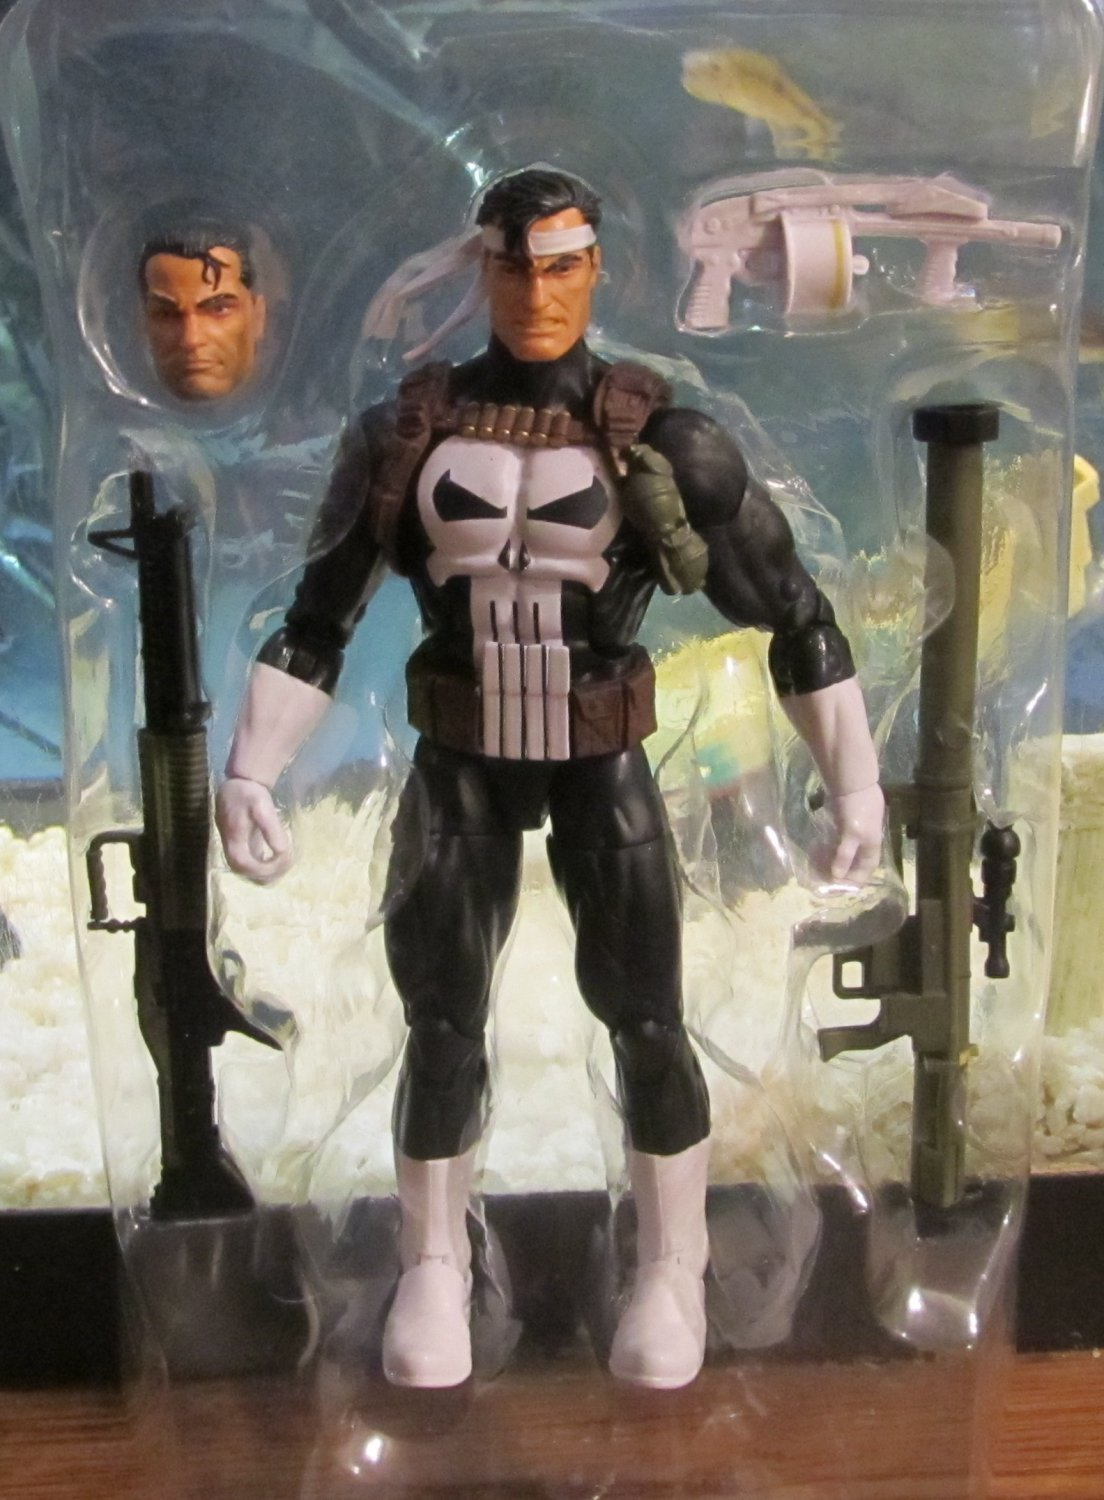 Marvel Legends 2016 JIM LEE PUNISHER FIGURE Loose 6 Inch Walgreen's Exclusive